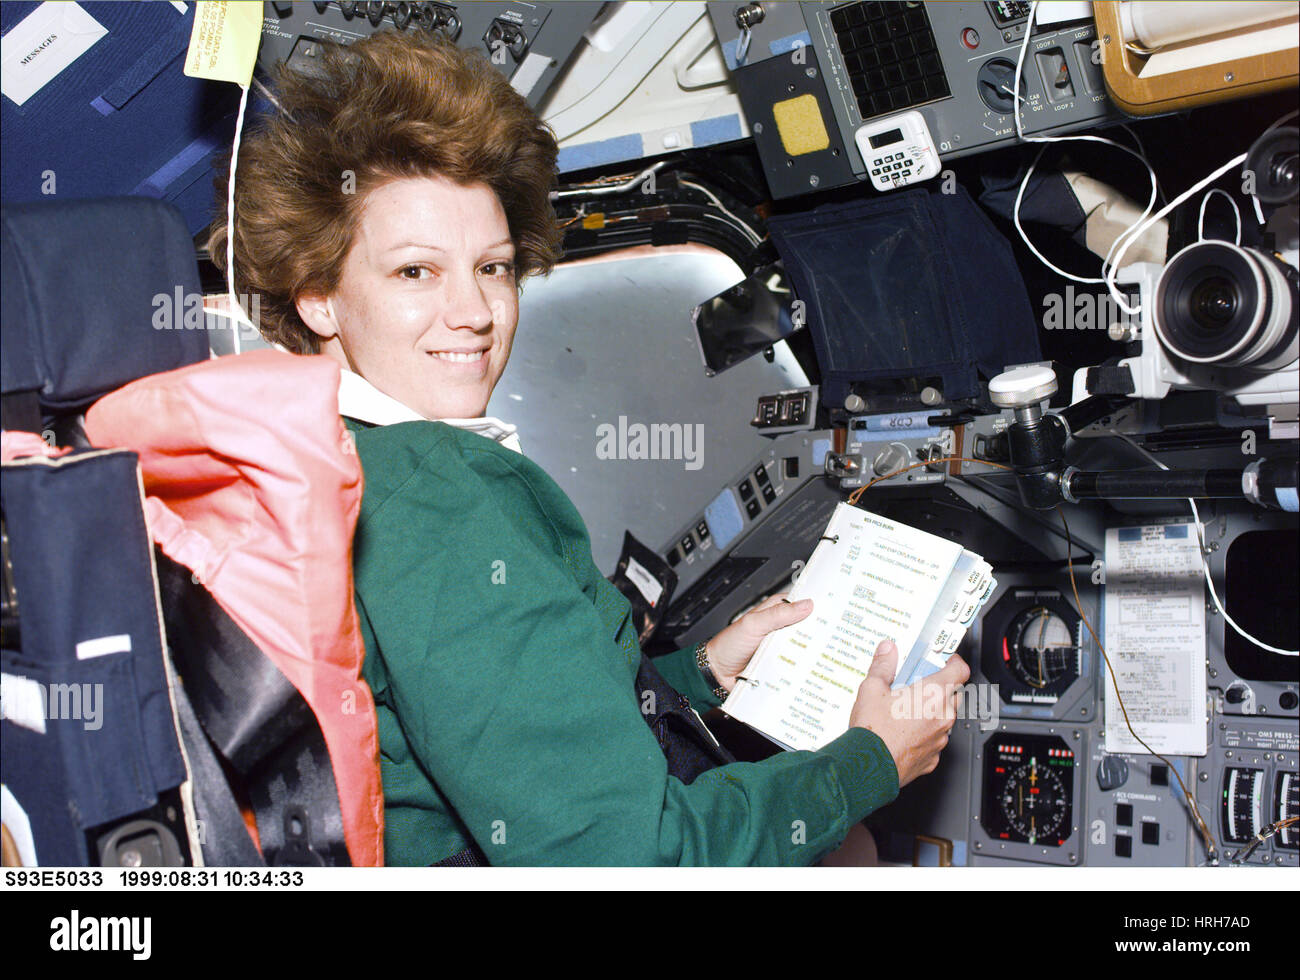 Mission commander Eileen M. Collins on STS-093 - Stock Image